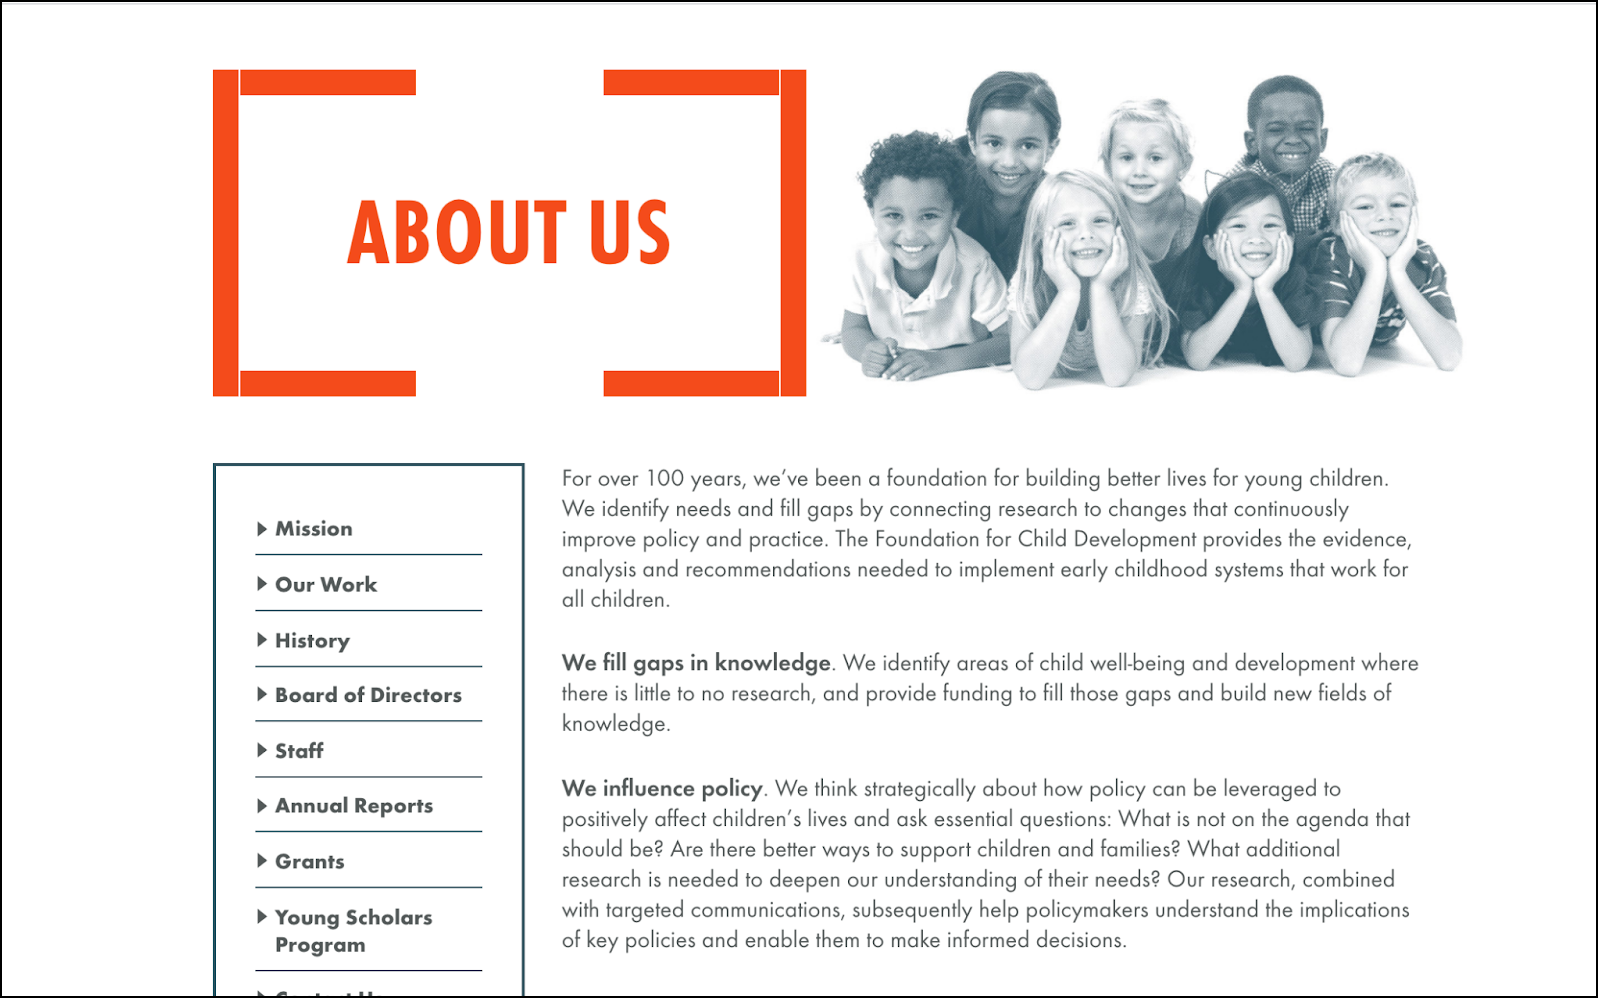 Foundation for Child Development About Us page